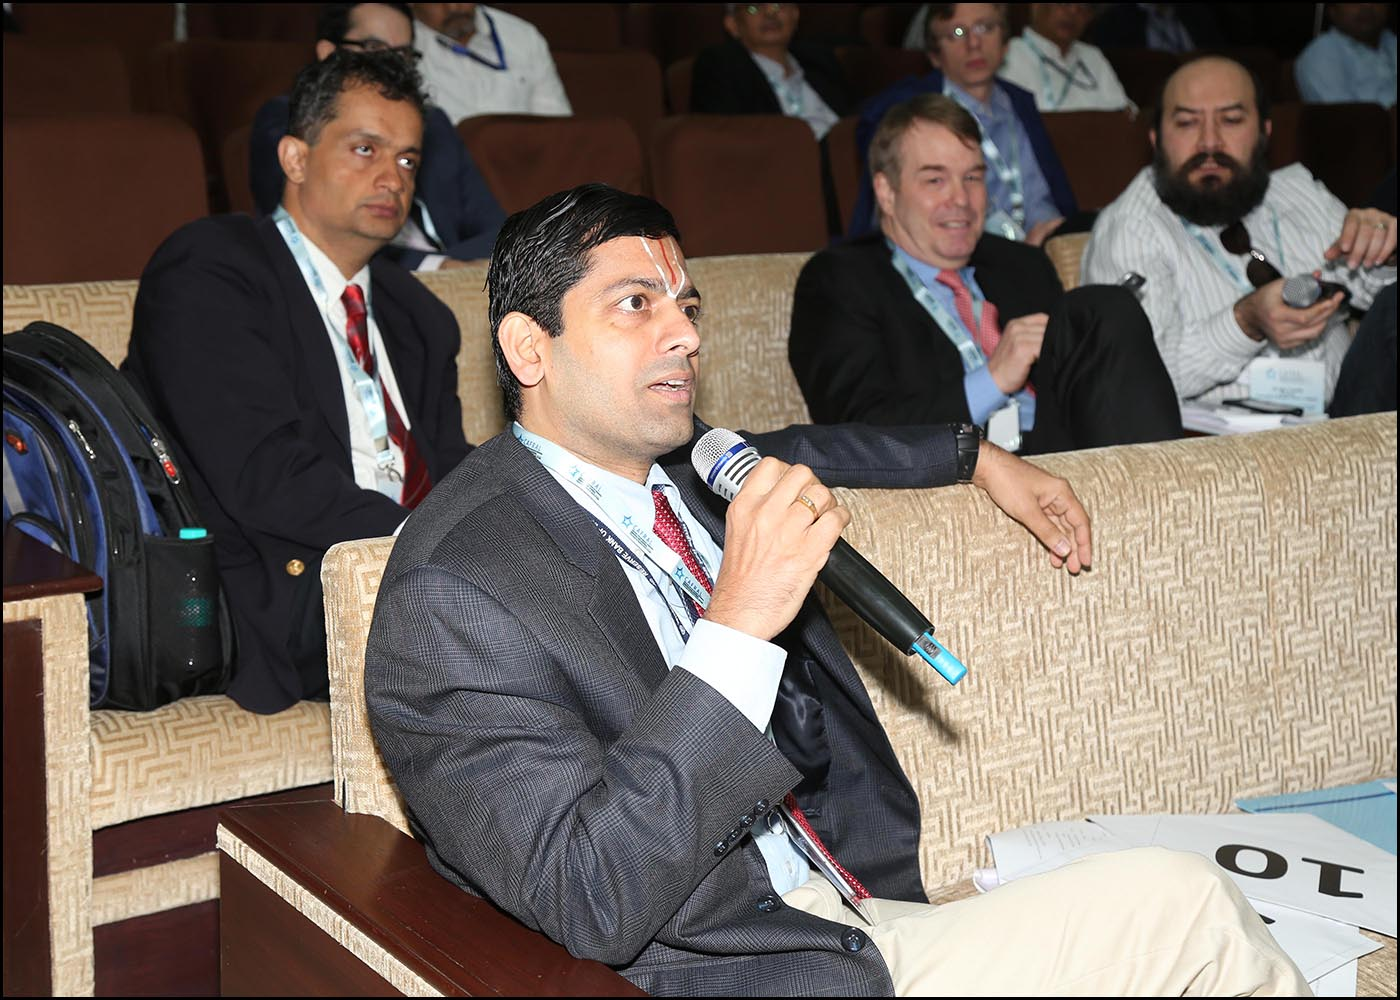 Dr. Anand Srinivasan, Addl. Director (Research), CAFRAL